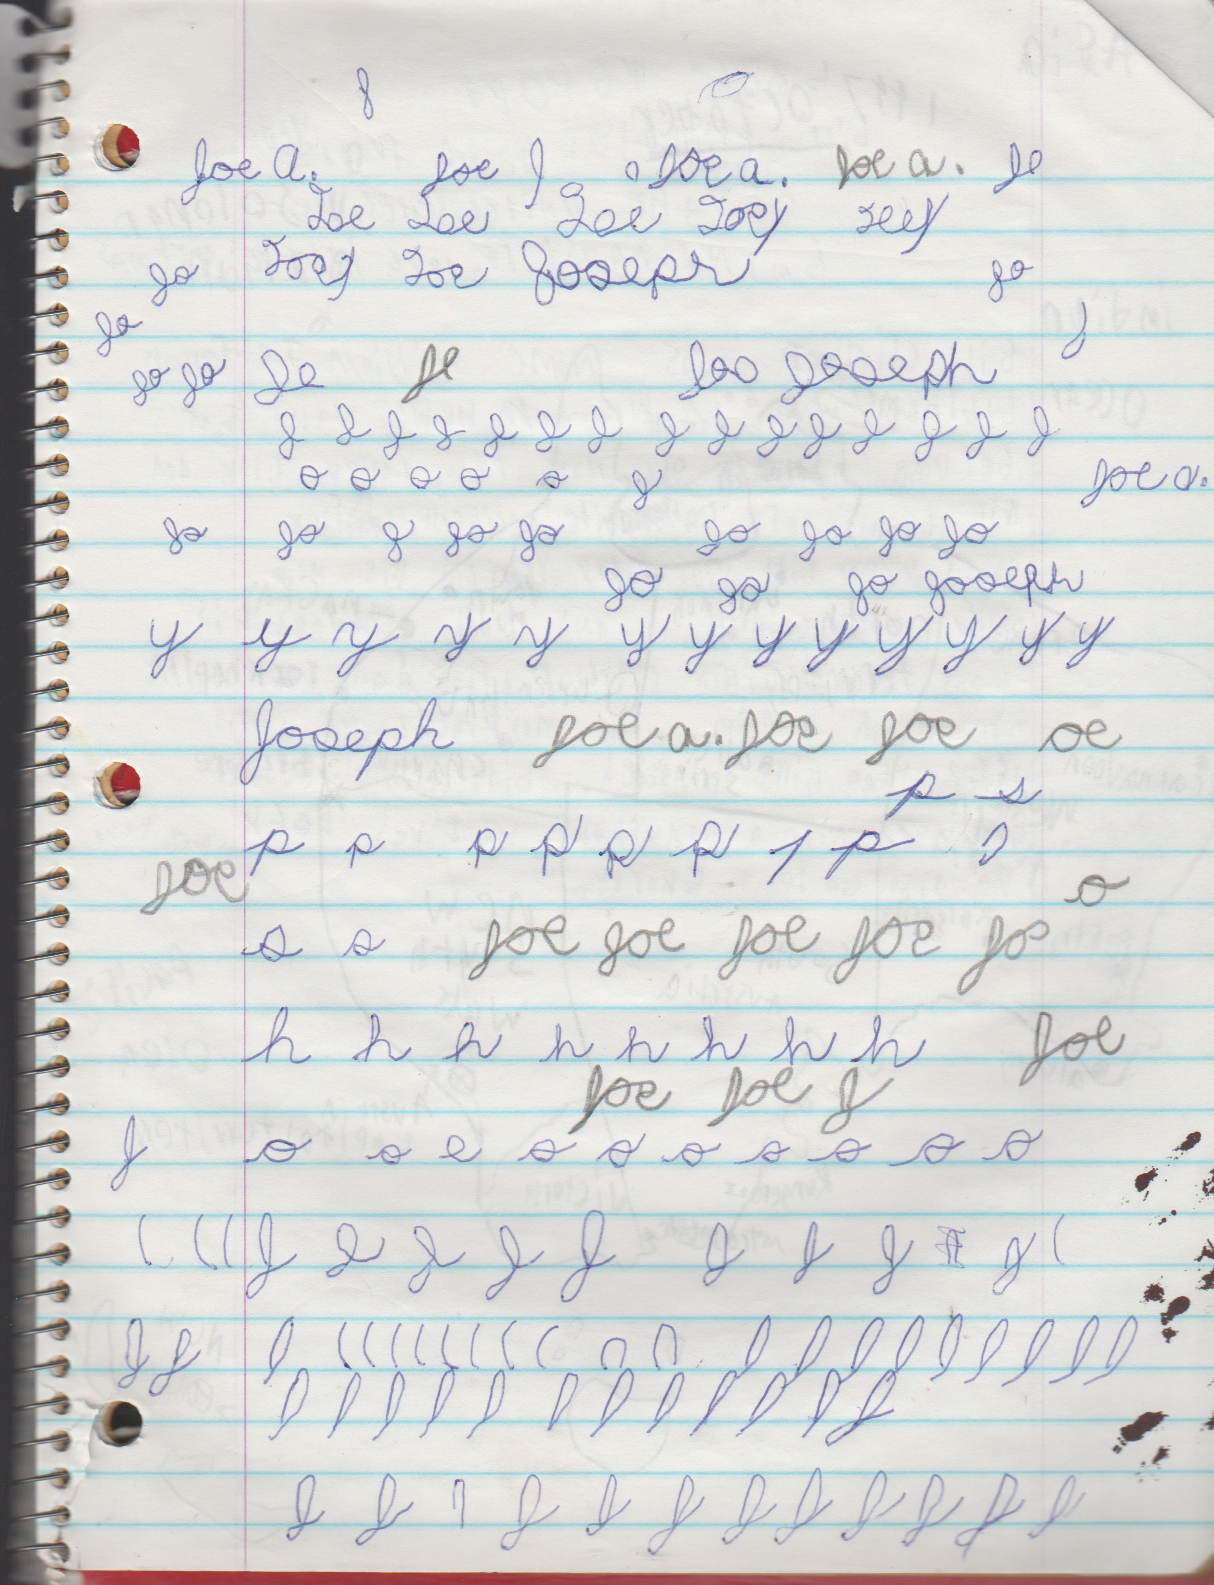 1996-08-18 - Saturday - 11 yr old Joey Arnold's School Book, dates through to 1998 apx, mostly 96, Writings, Drawings, Etc-095.png